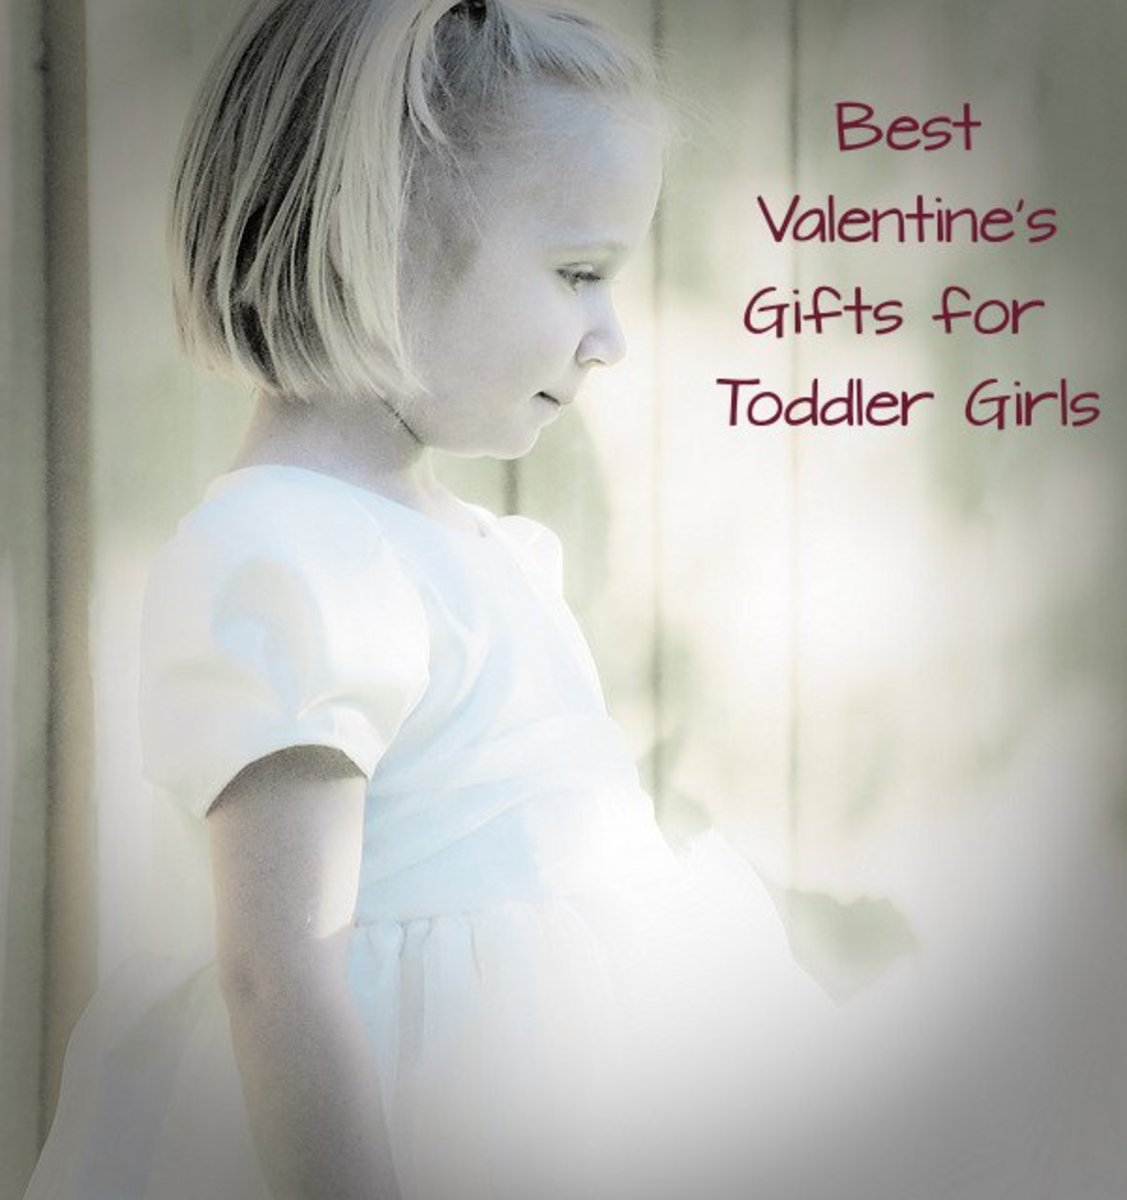 Best Valentine's Gifts for Toddler Girls